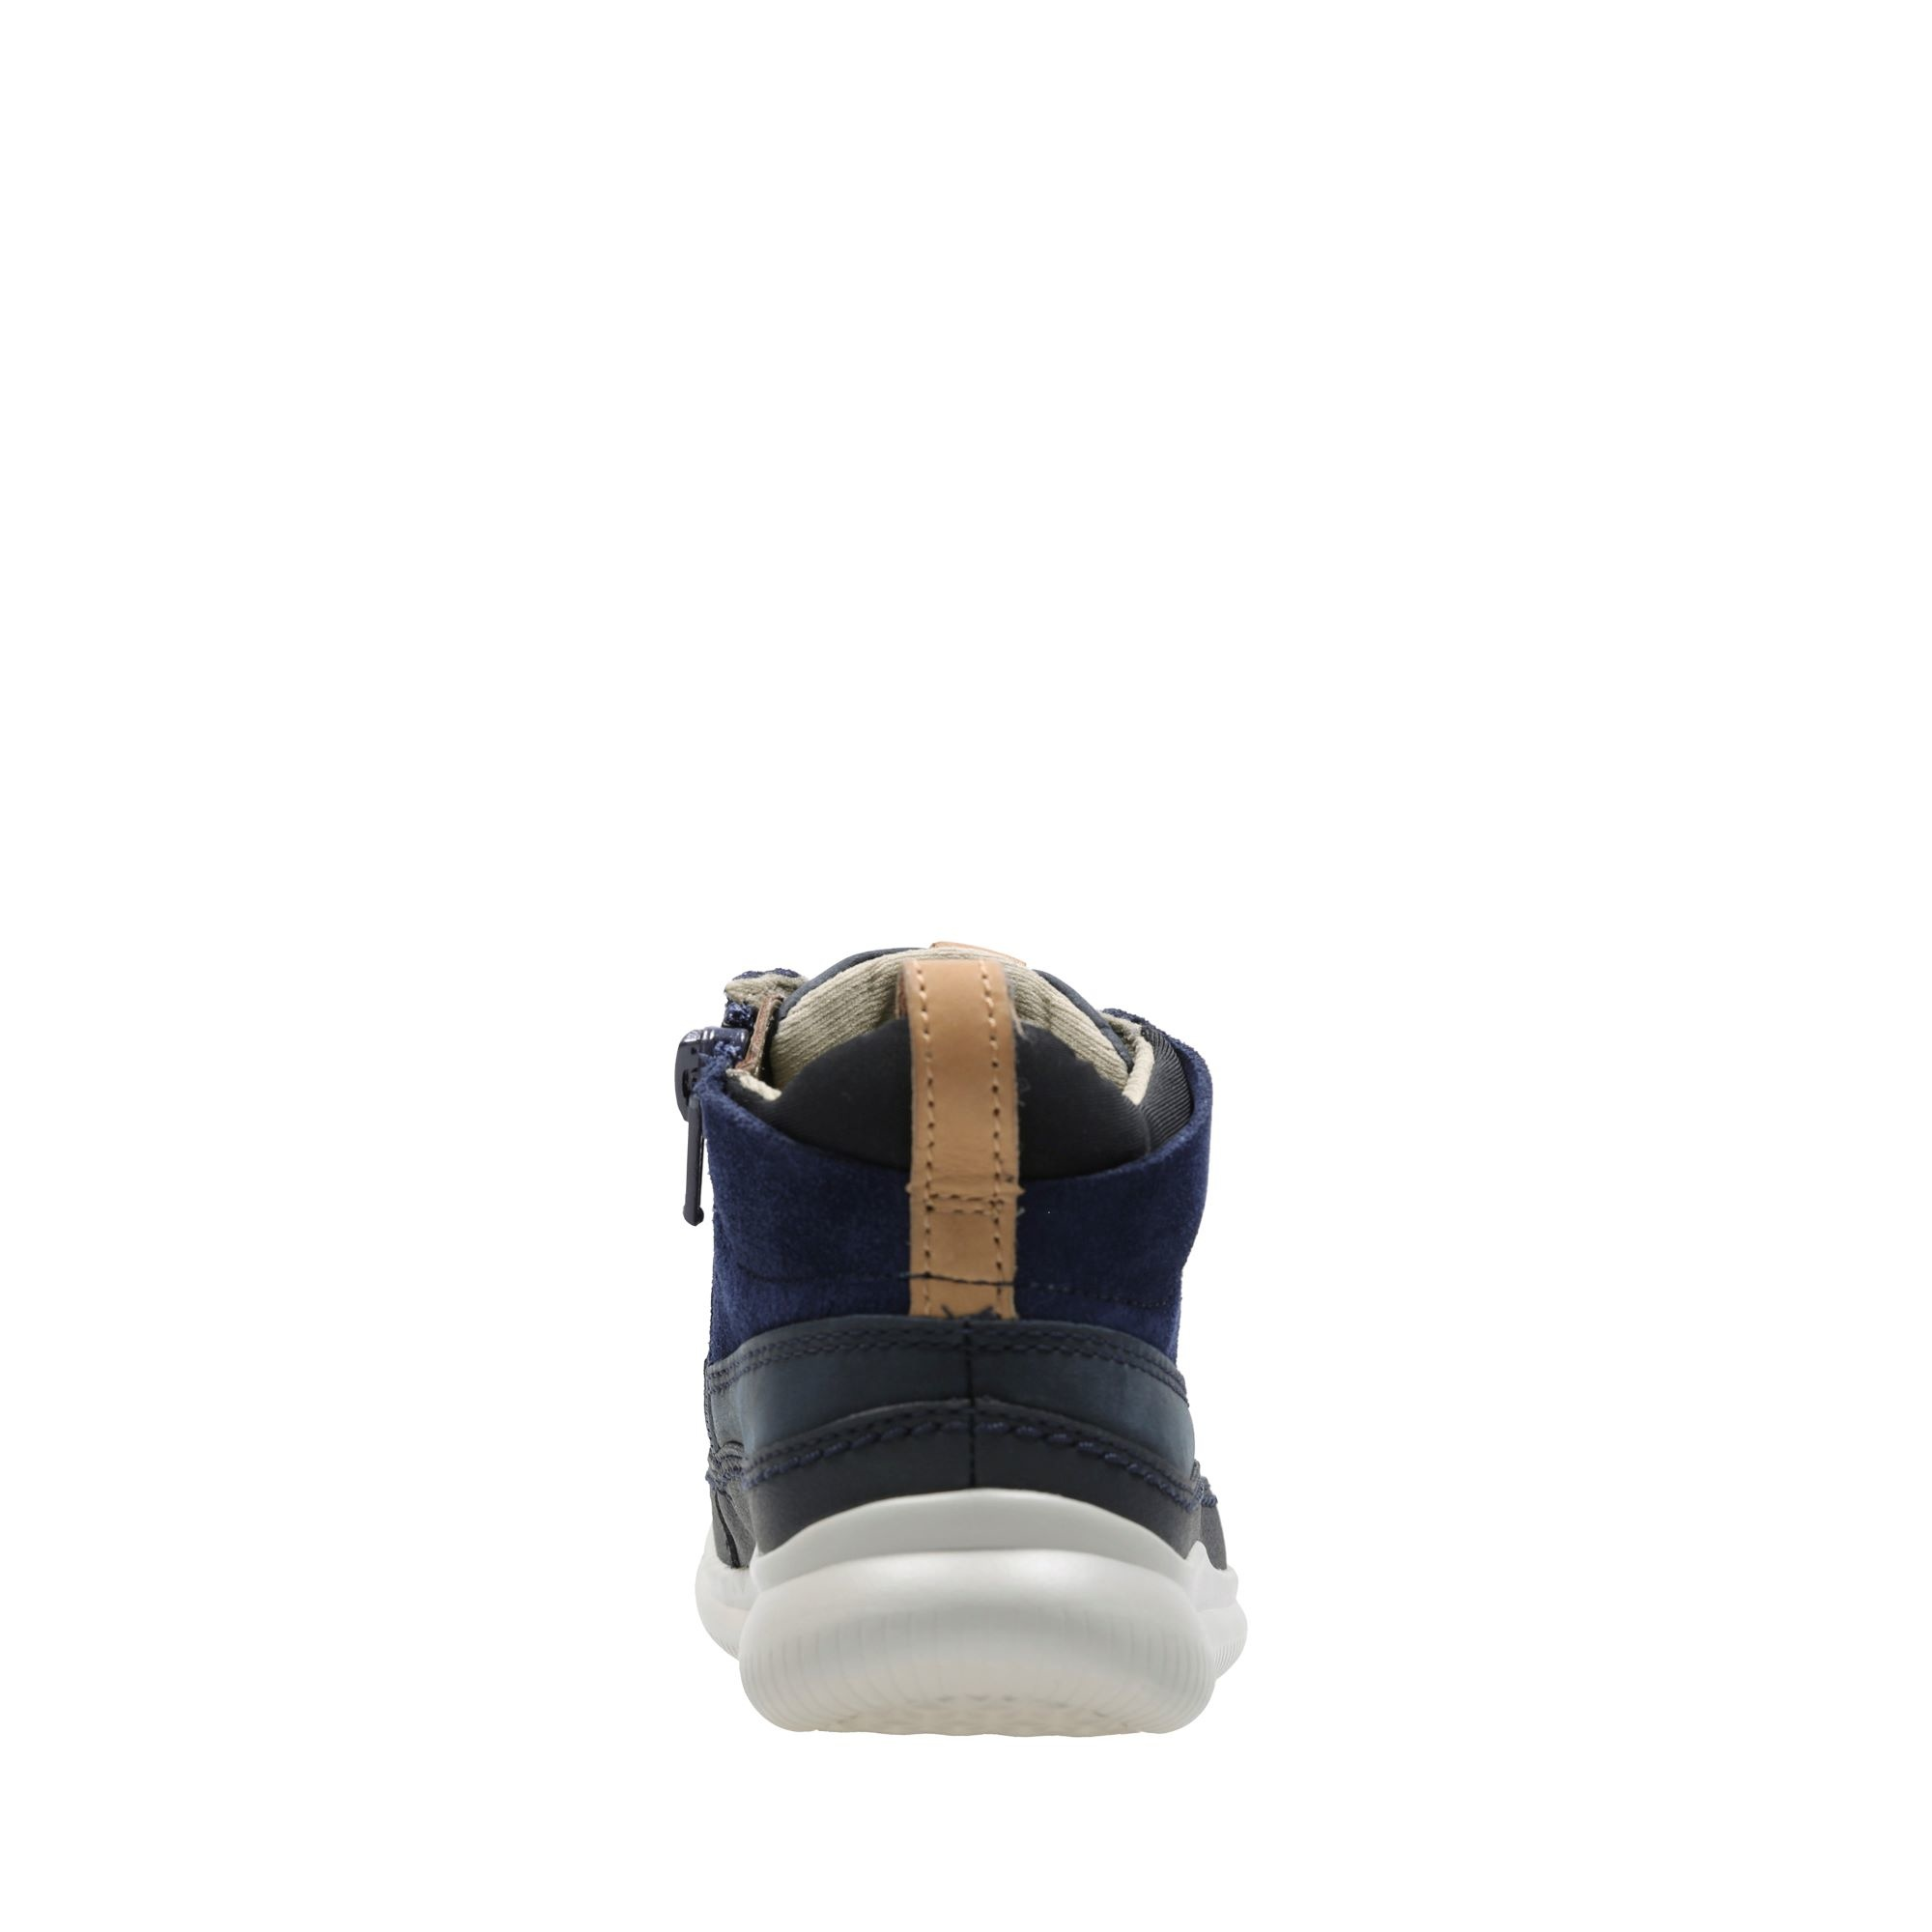 Clarks Cloud Air Inf Navy Junior